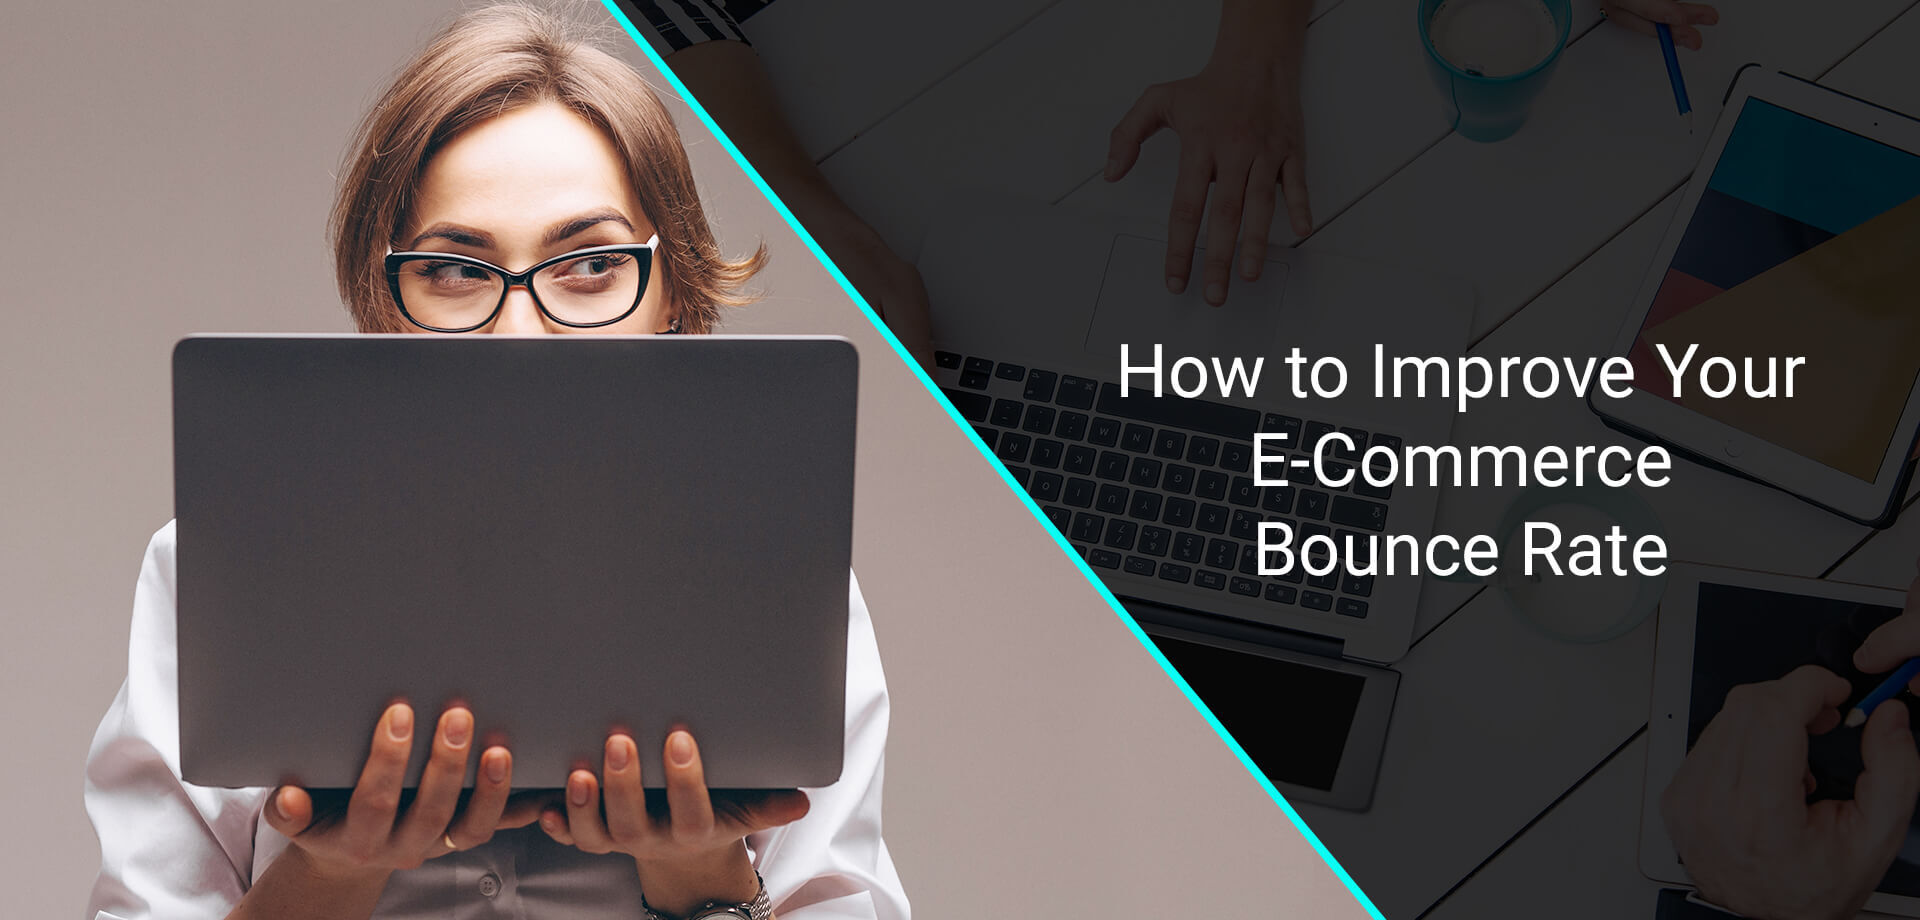 How to Improve Your E-Commerce Bounce Rate